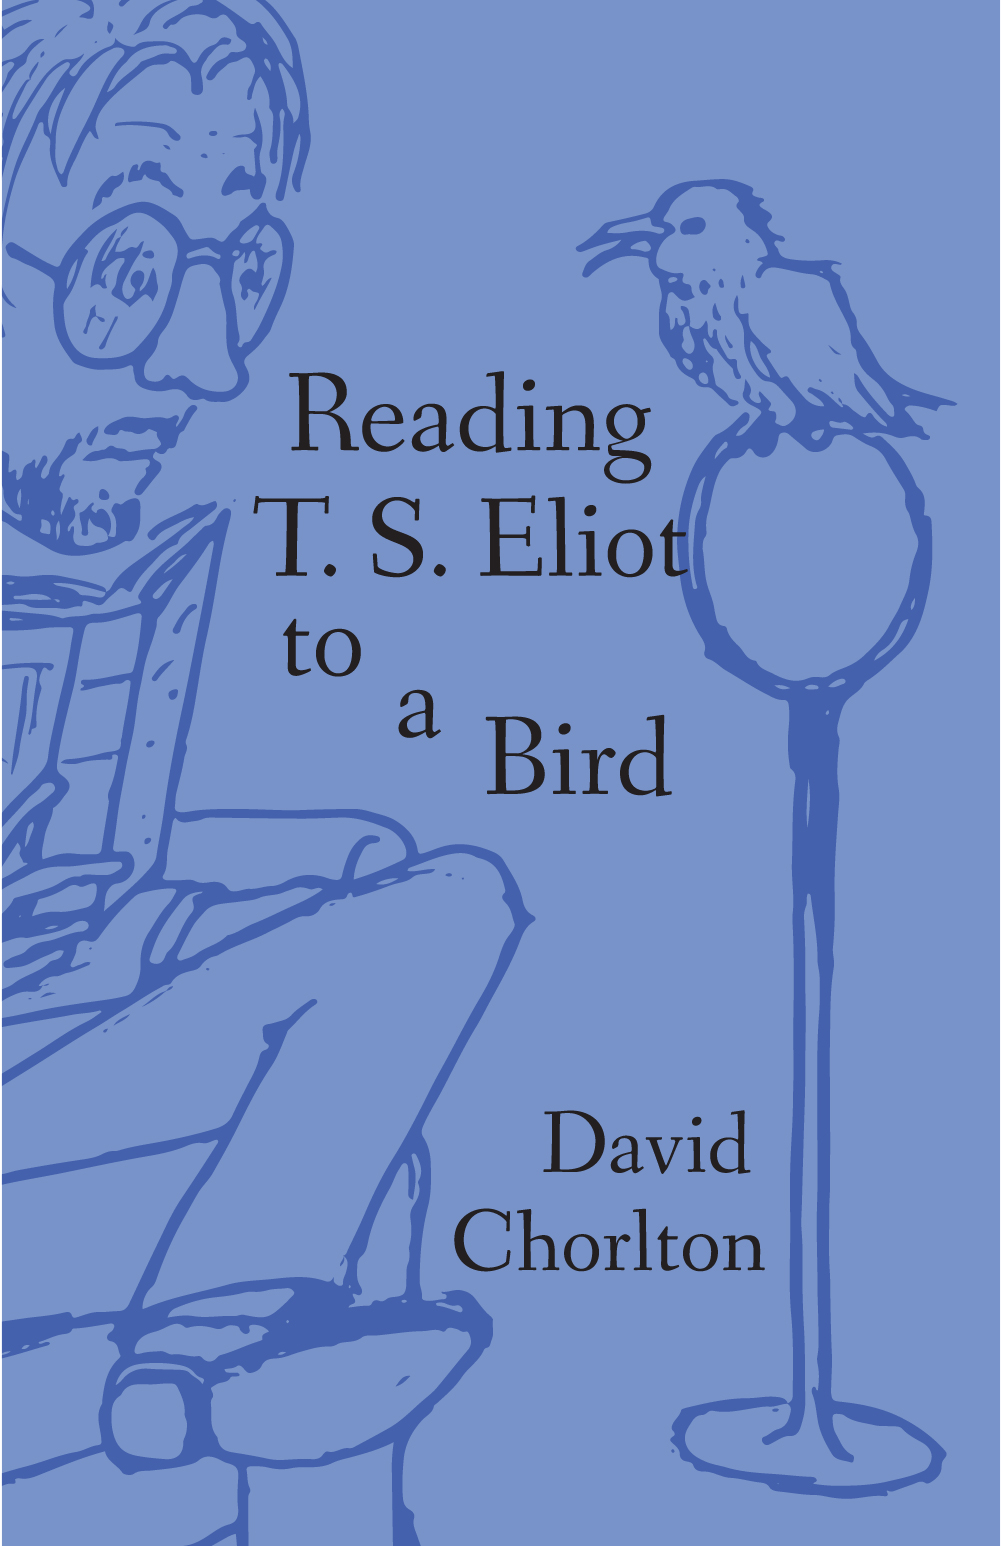 Reading T. S. Eliot to a Bird